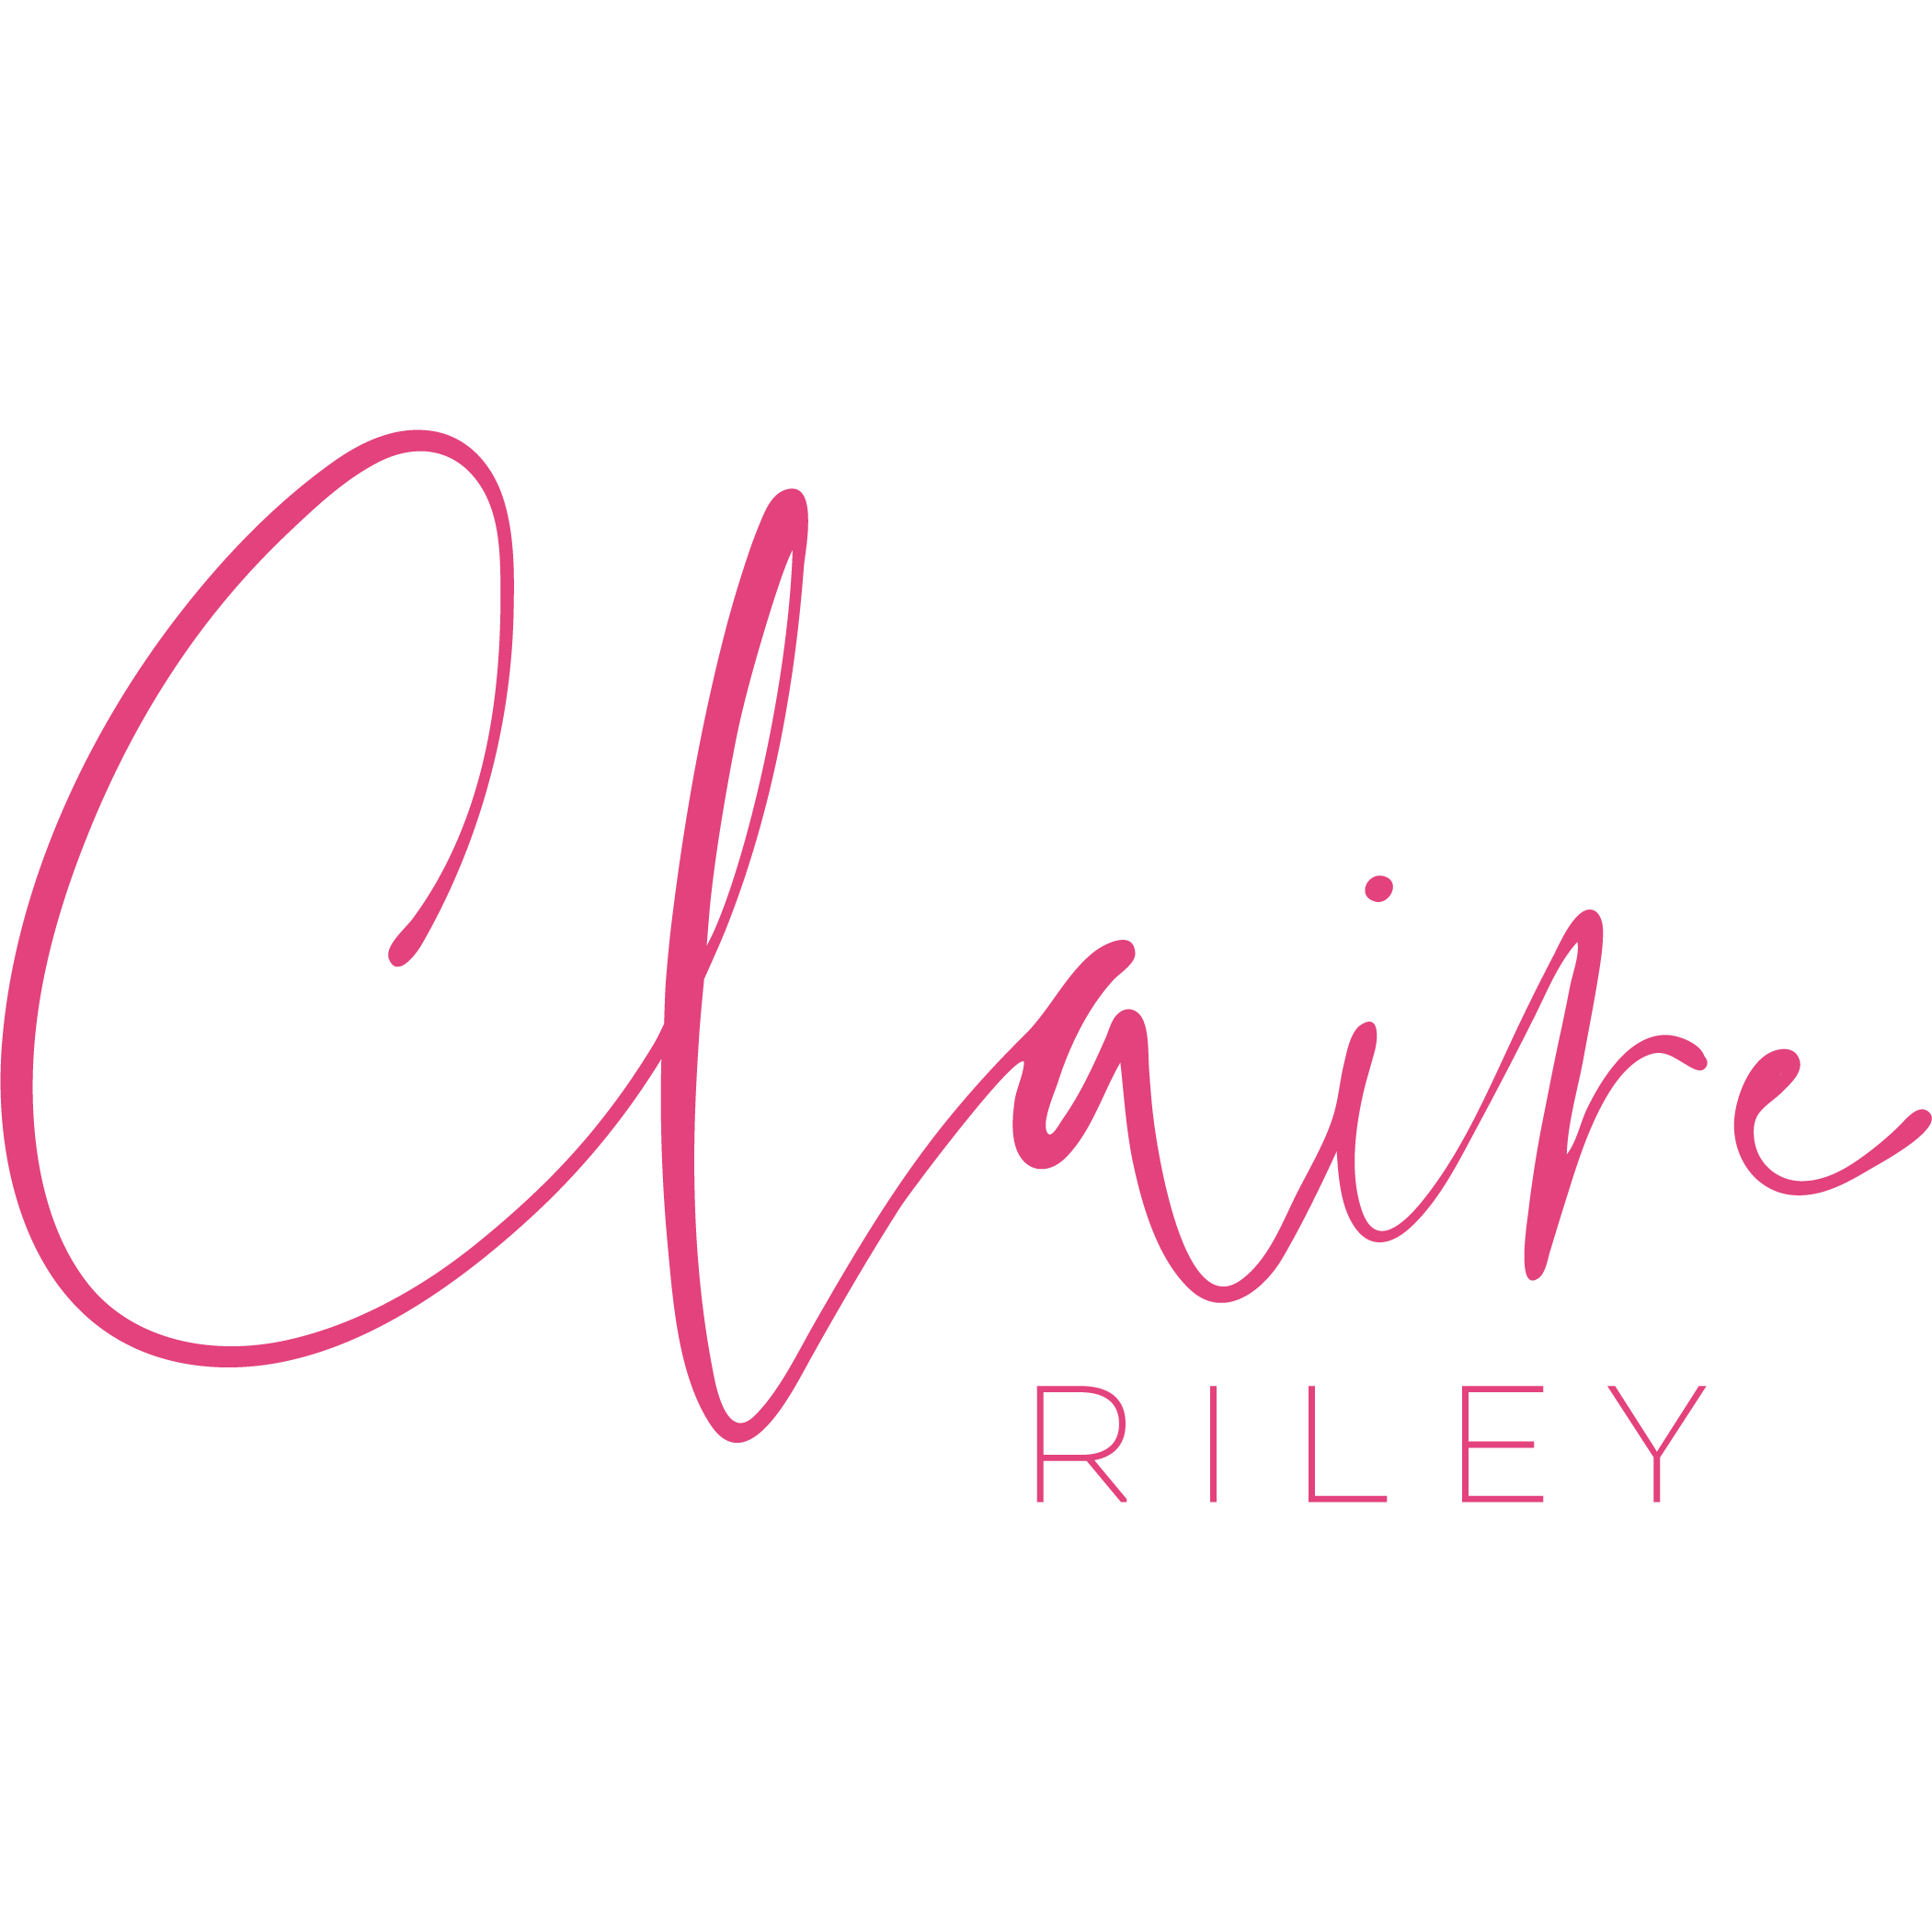 Claire Riley Studio